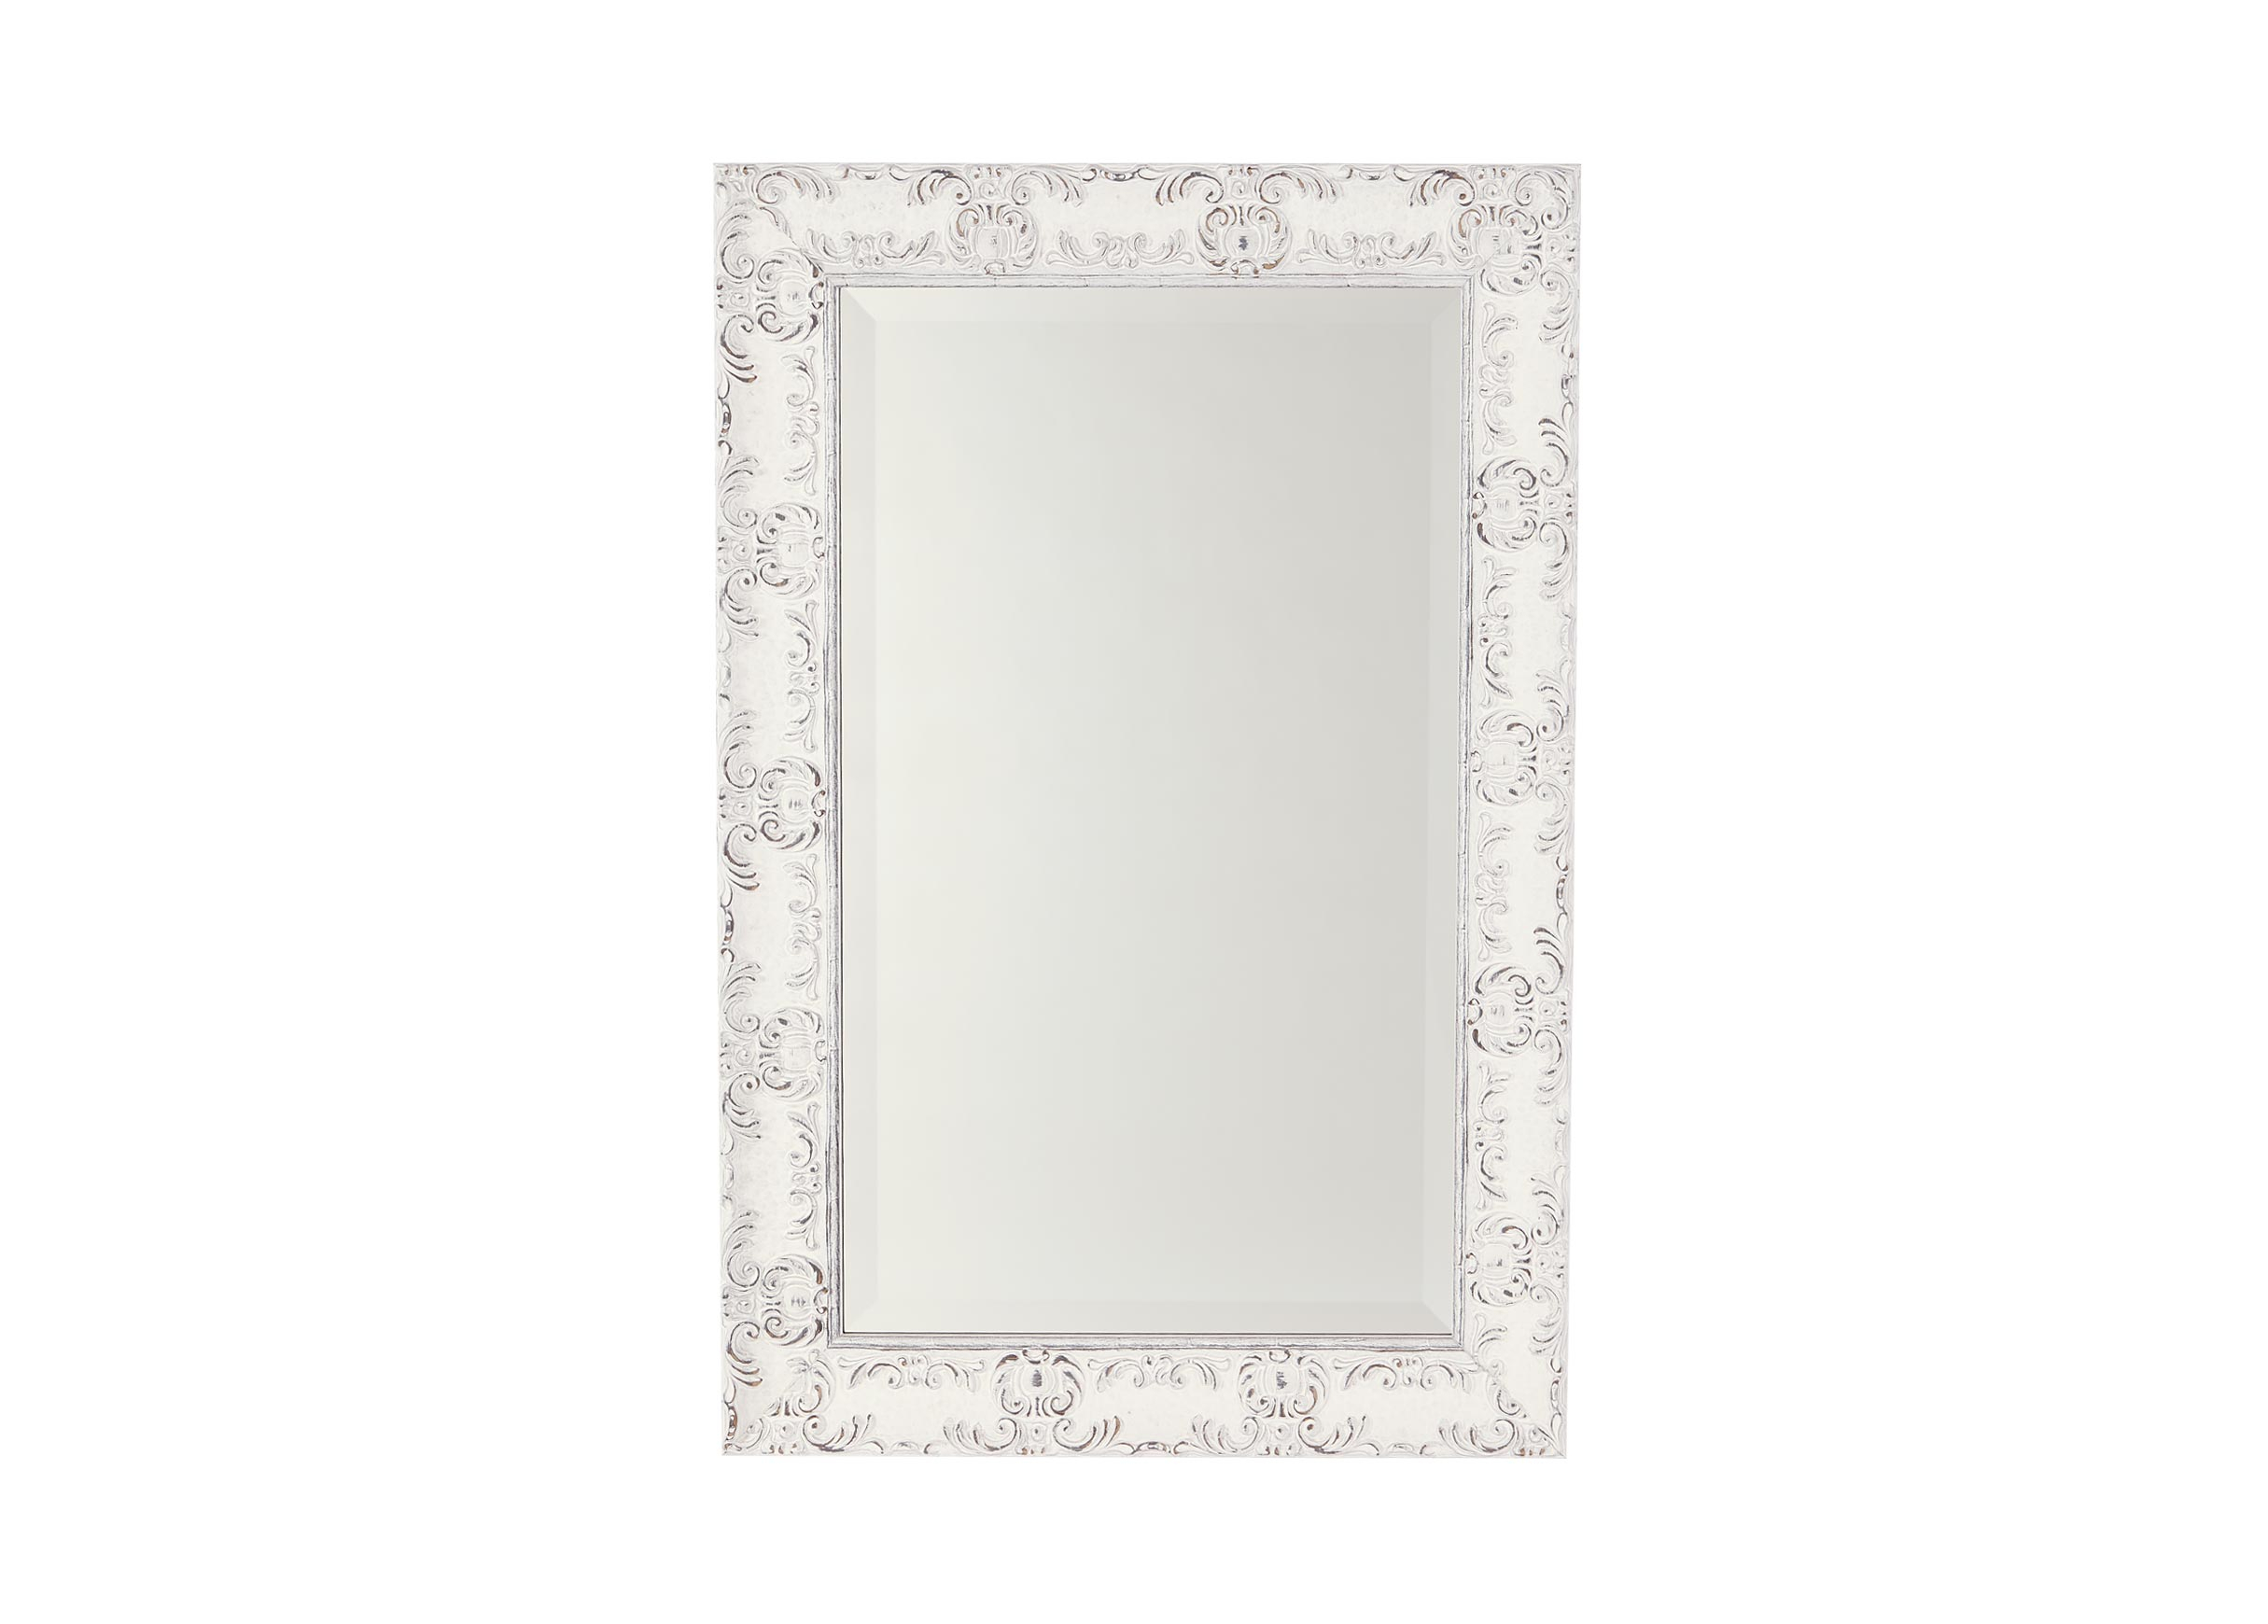 Not Your Traditional Wall Mirror | Mirrors | Ethan Allen With Regard To Traditional Metal Wall Mirrors (View 5 of 30)